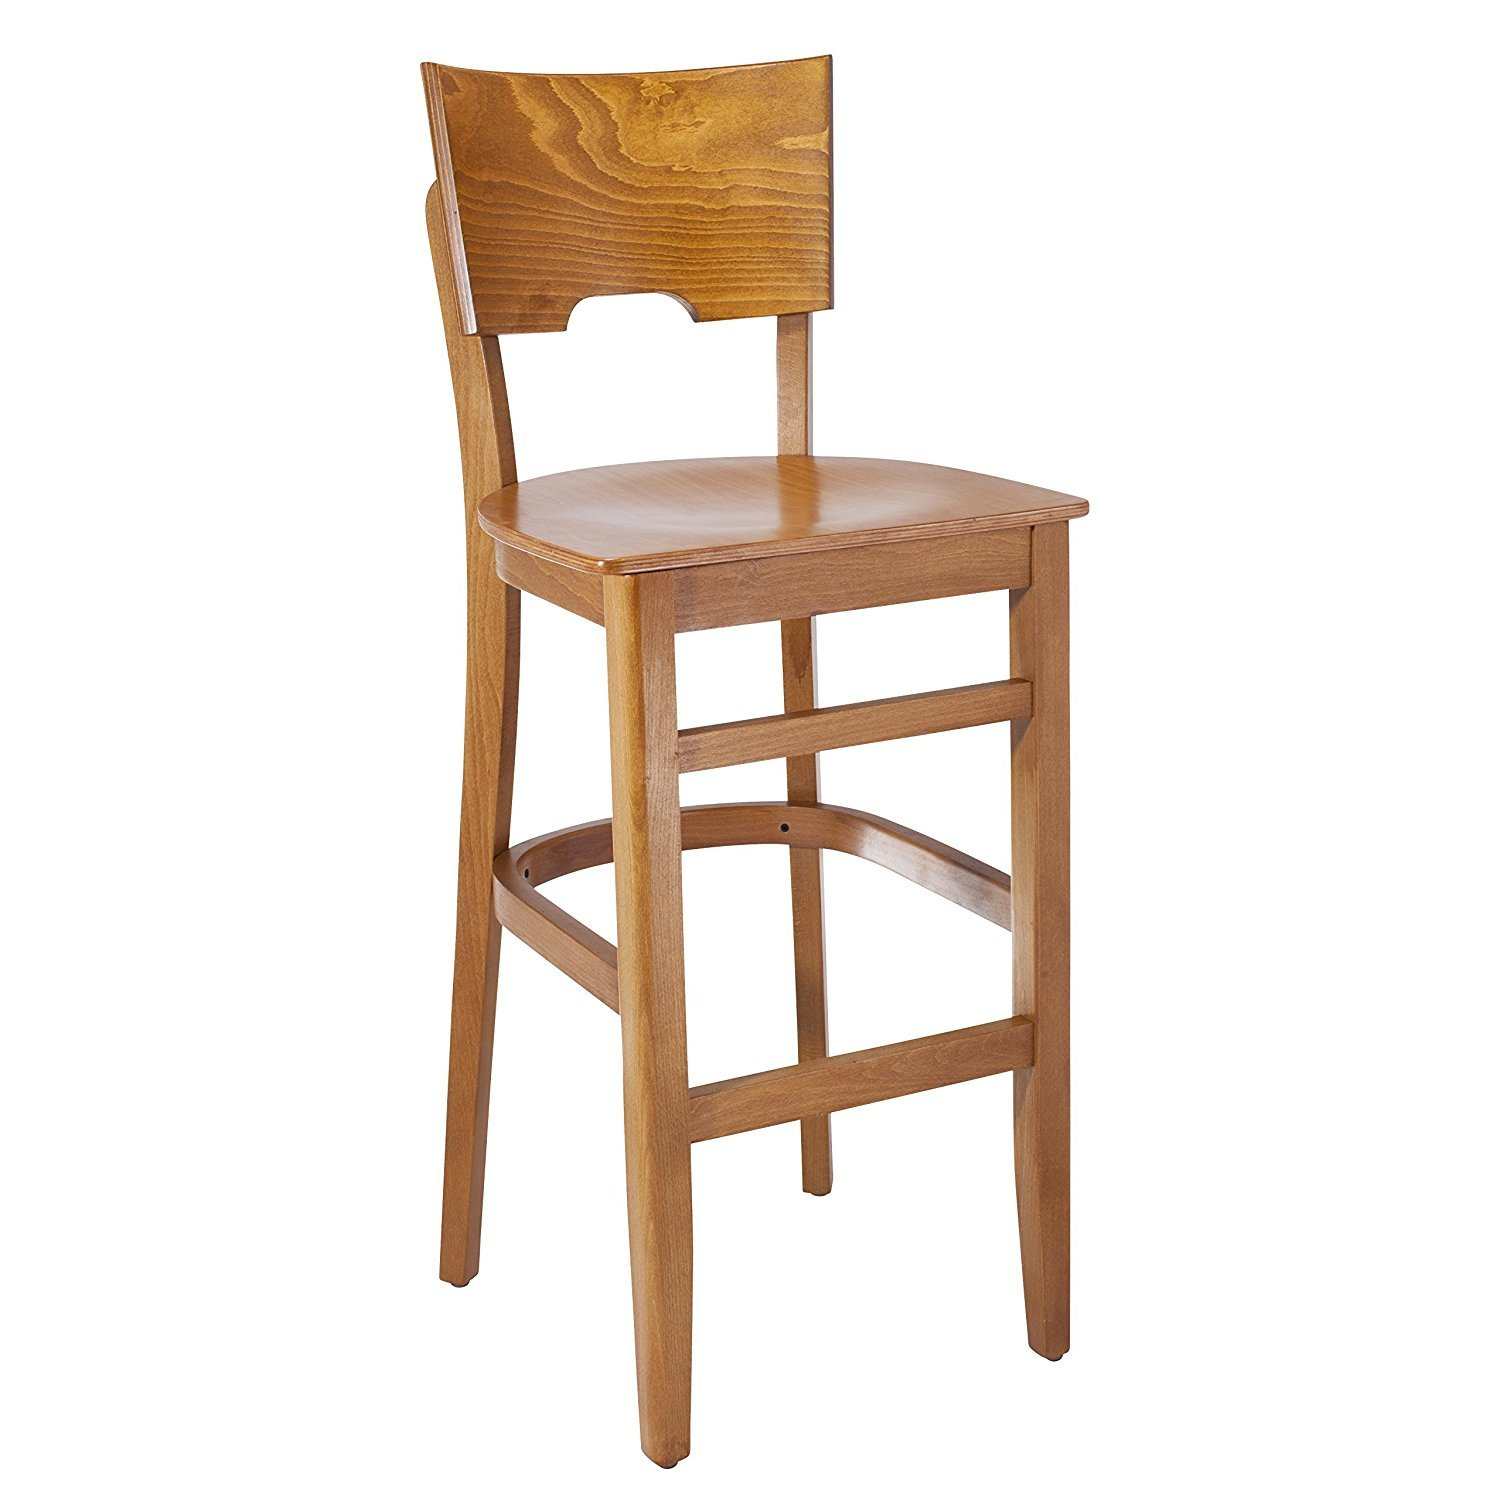 Beechwood Mountain BSD-11BW-C Solid Beech Wood bar Stool in Cherry with Wood Seat for Kitchen & Dining, NA by Beechwood Mountain